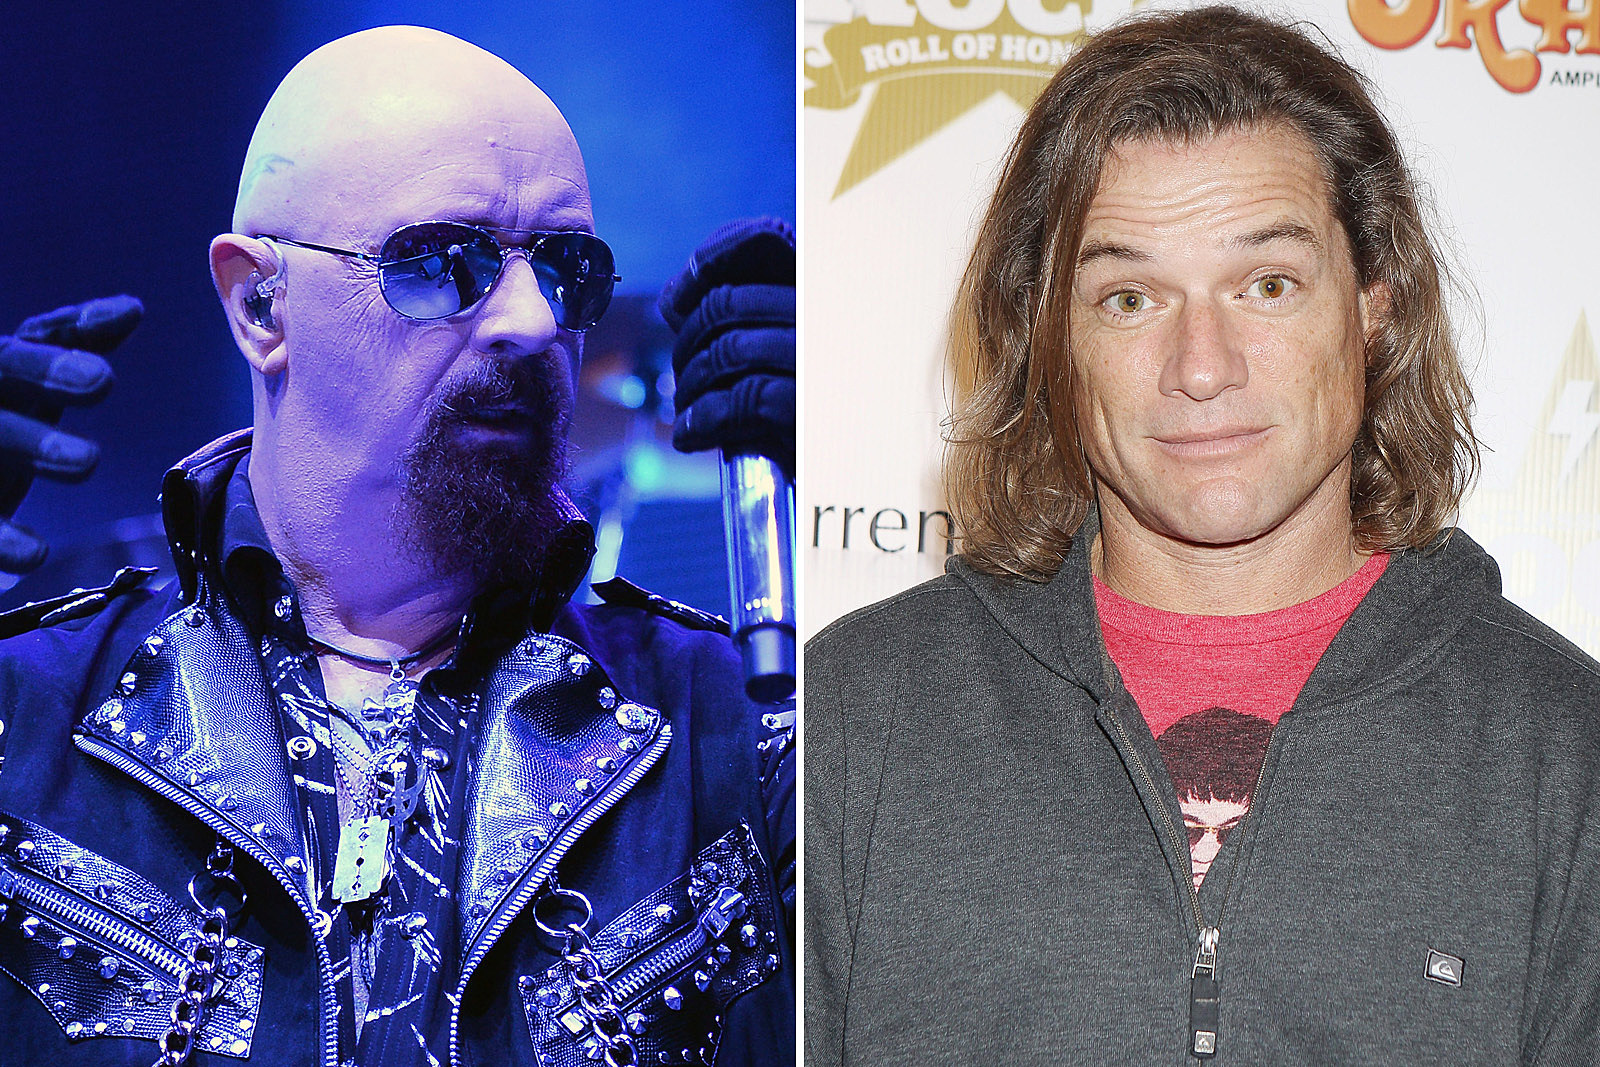 Judas Priest Once Asked Whitfield Crane to Replace Rob Halford